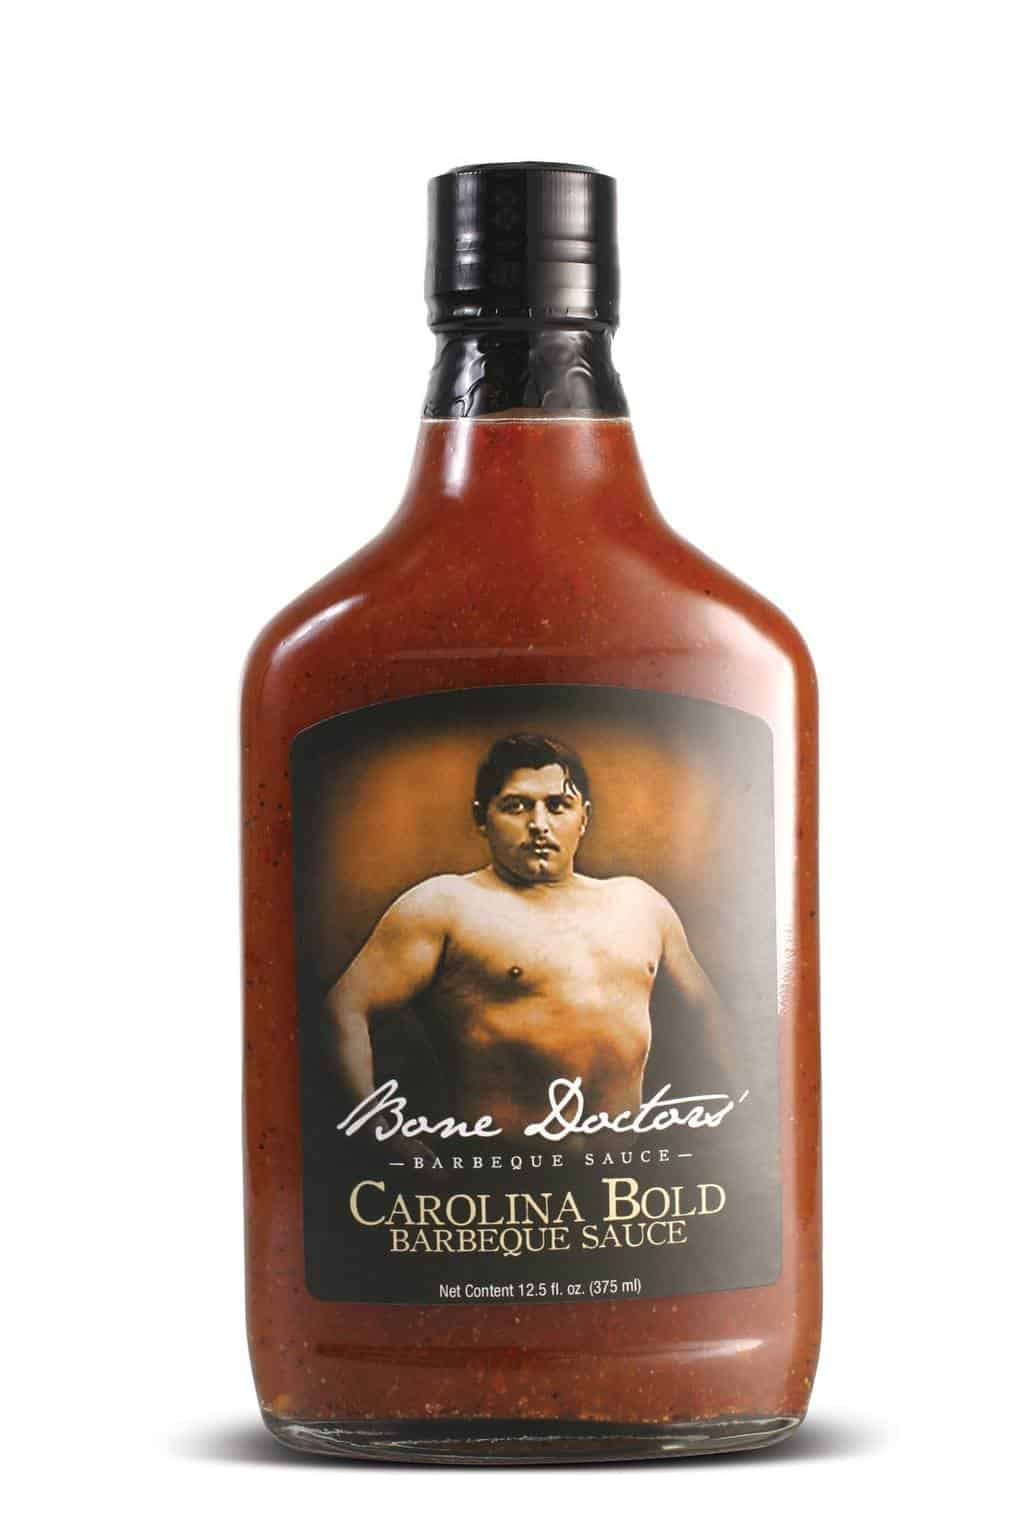 Gluten-Free BBQ Sauce from Bone Doctors' - Carolina Bold Vinegar Based BBQ Sauce